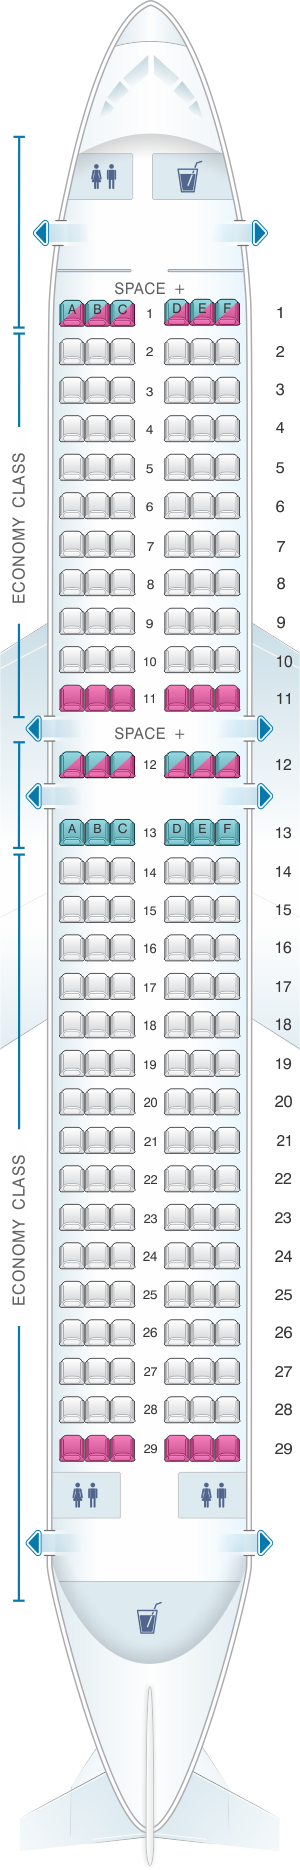 seat map latam airlines brasil airbus a320 174pax